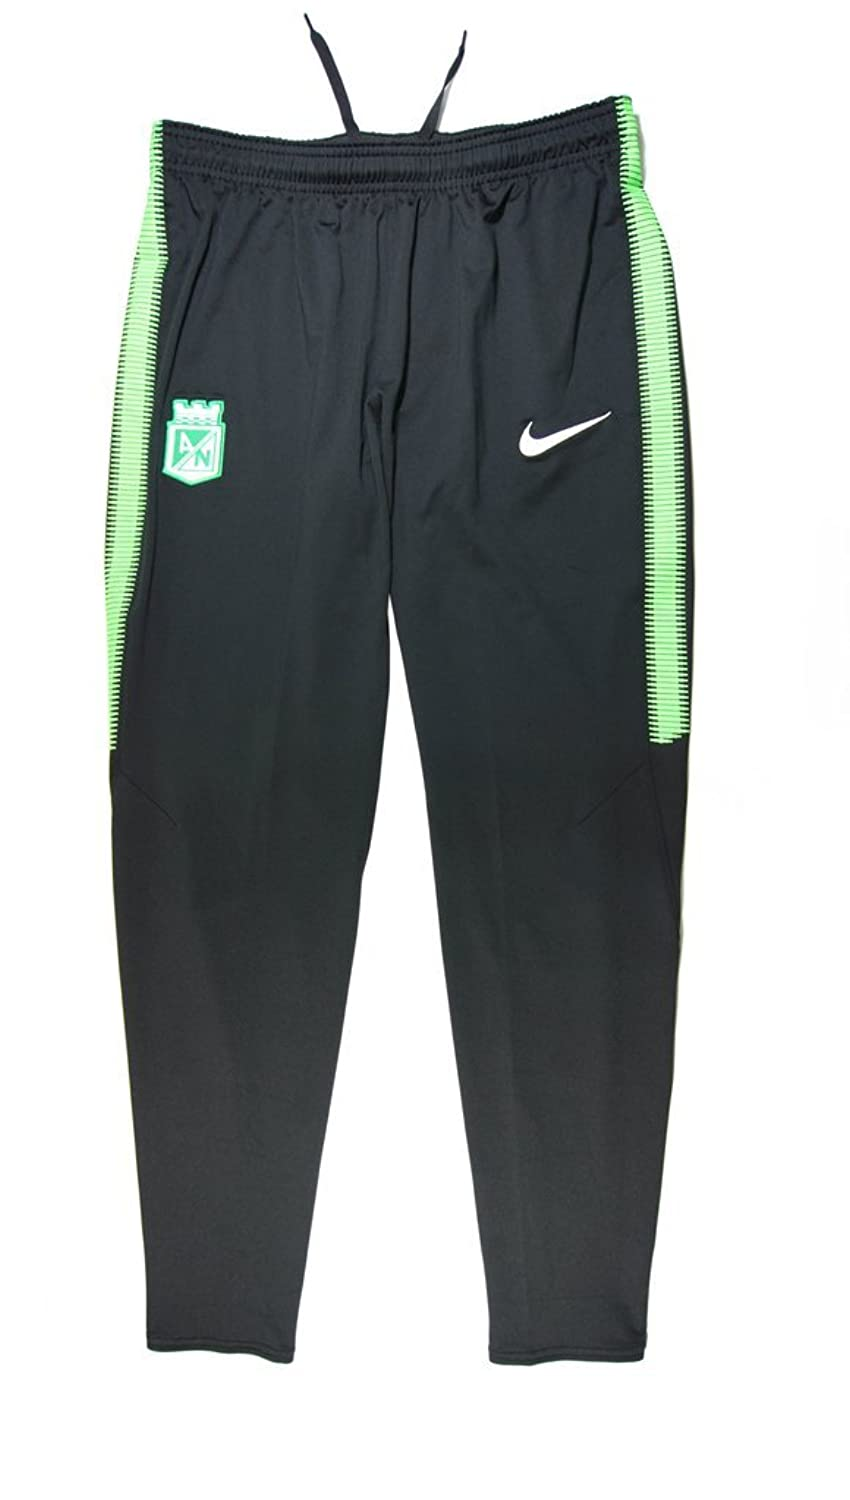 Amazon.com: Authentic Mens Atlético Nacional Football/Soccer Training Pants 17/18 Medium: Clothing